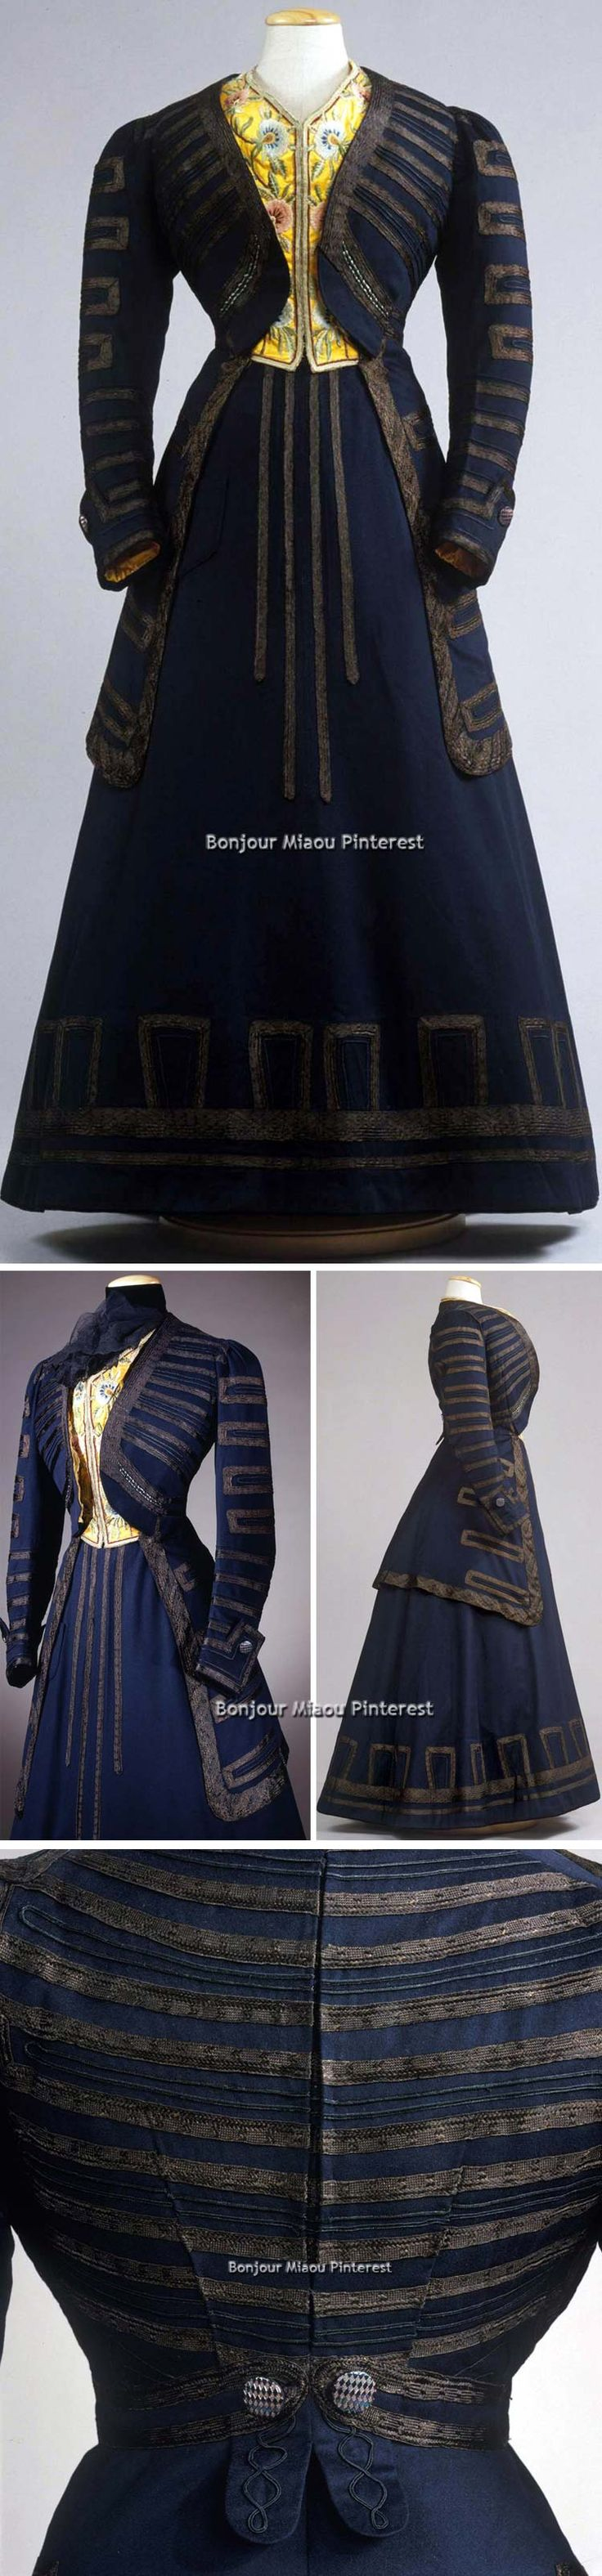 Walking dress, Mlle. Amalie Wallemien, Vienna, ca. 1908. Blue cloth with applications of brown silk braid. V-necked frock-style coat with long sleeves with high cuffs, lined in ivory linen, white cotton, & yellow silk. Faux vest in yellow taffeta, embroidered with floral polychrome. Flared skirt with patch pocket on right side, rear hooks. Balayeuse of blue velvet ribbon under skirt. Galleria del Costume di Palazzo Pitti via Europeana Fashion